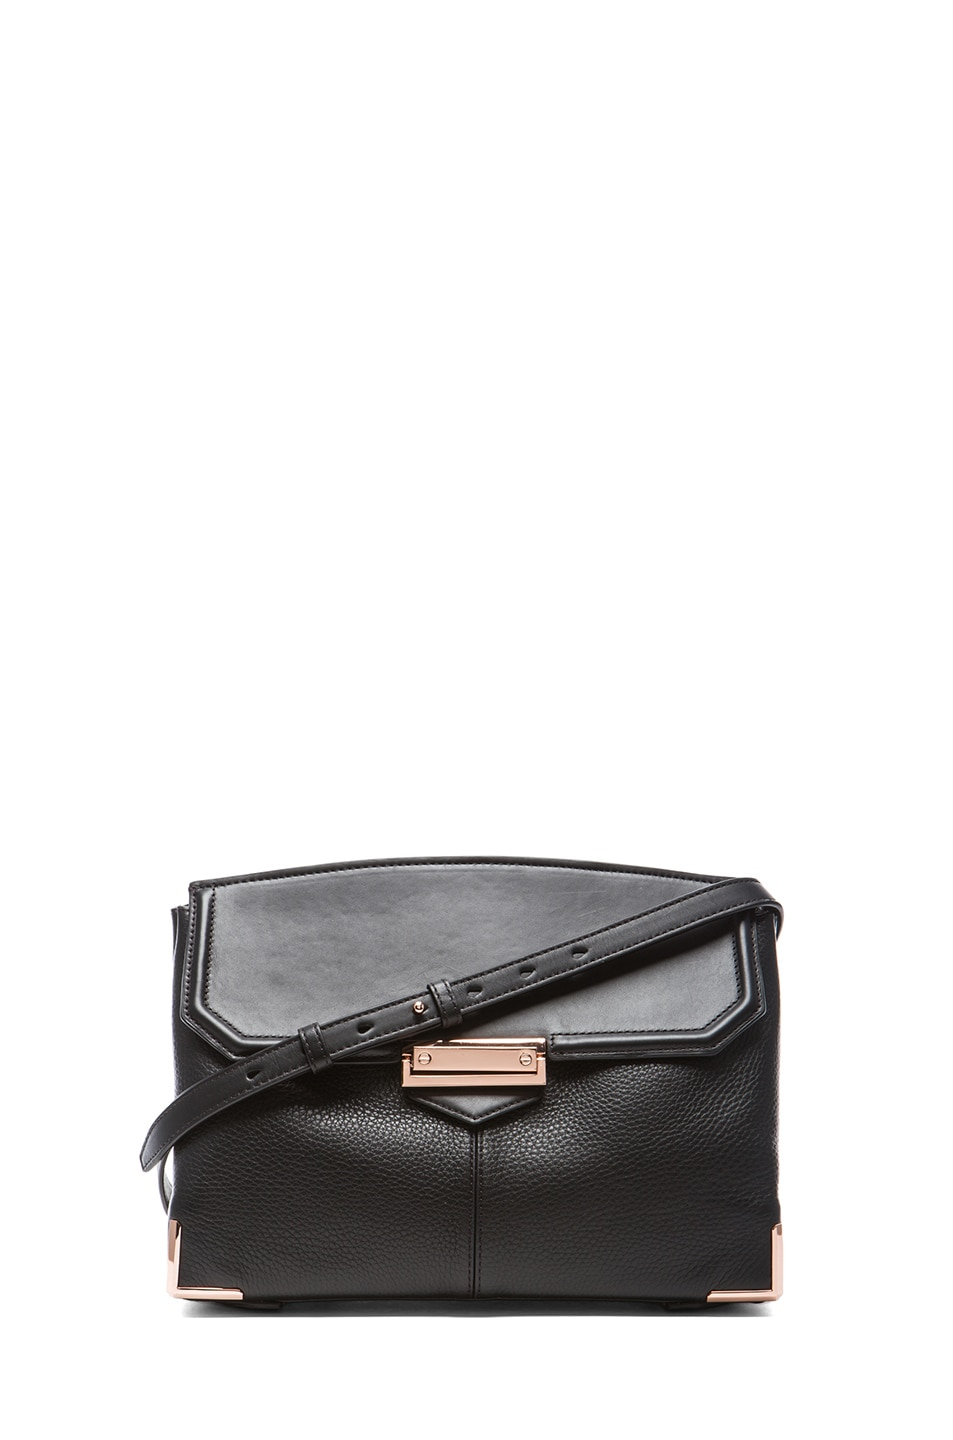 Image 1 of Alexander Wang Large Marion Soft Pebble Leather with Rose Gold Hardware in Black